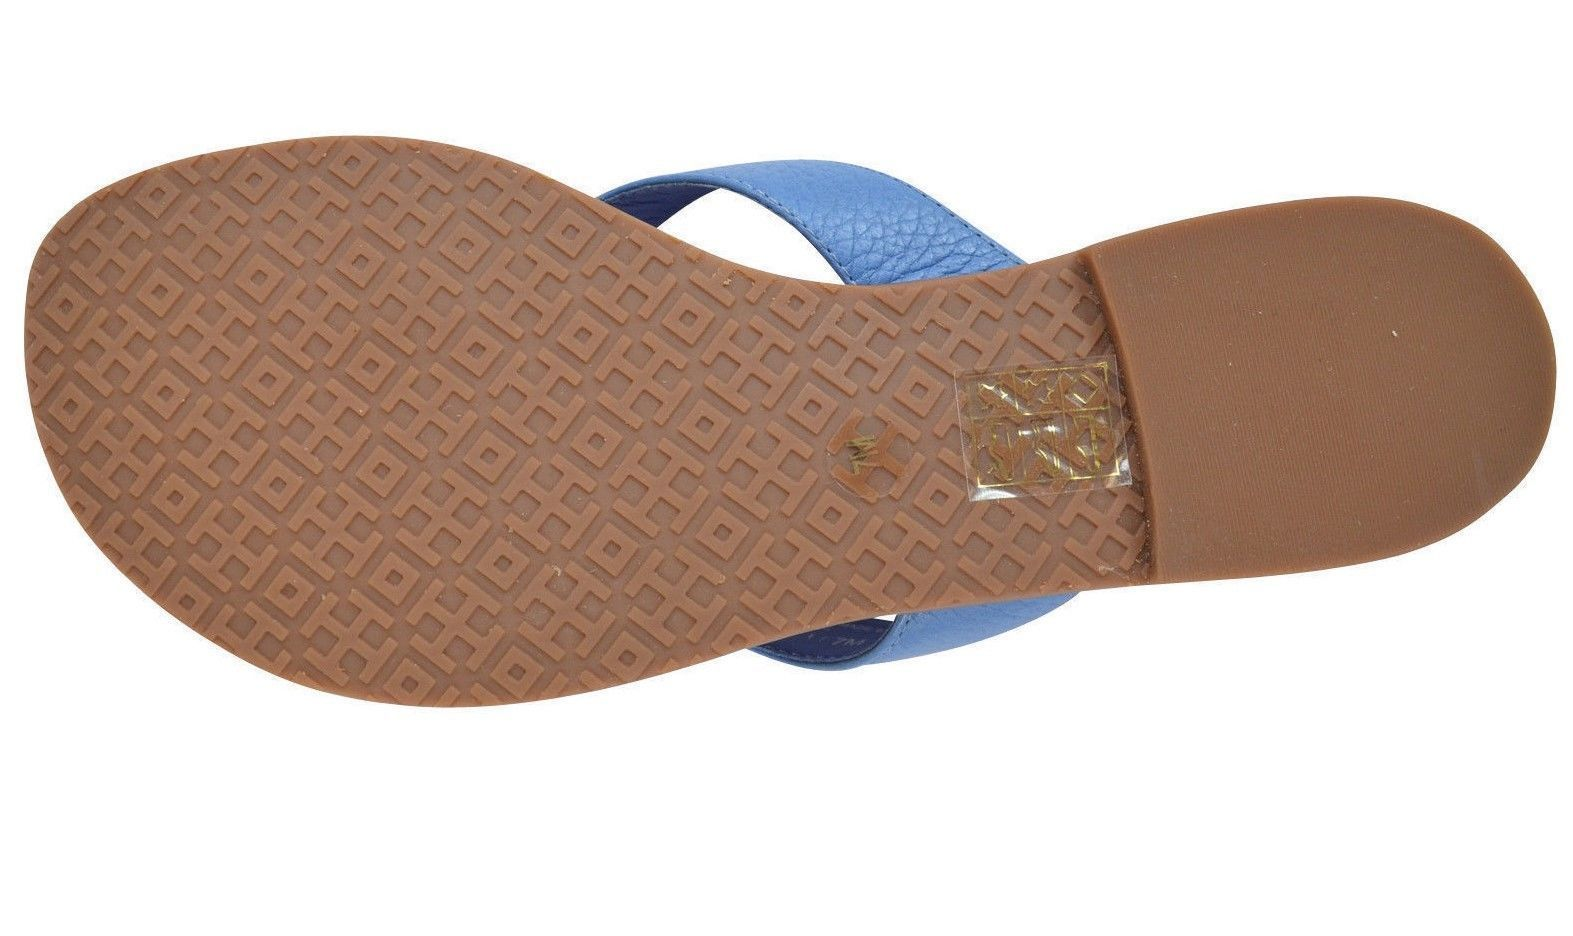 e131a5e13797 NEW WOMENS TORY BURCH THORA THONG FLAT TUMBLED LEATHER CHAMBRAY GOLD SANDALS